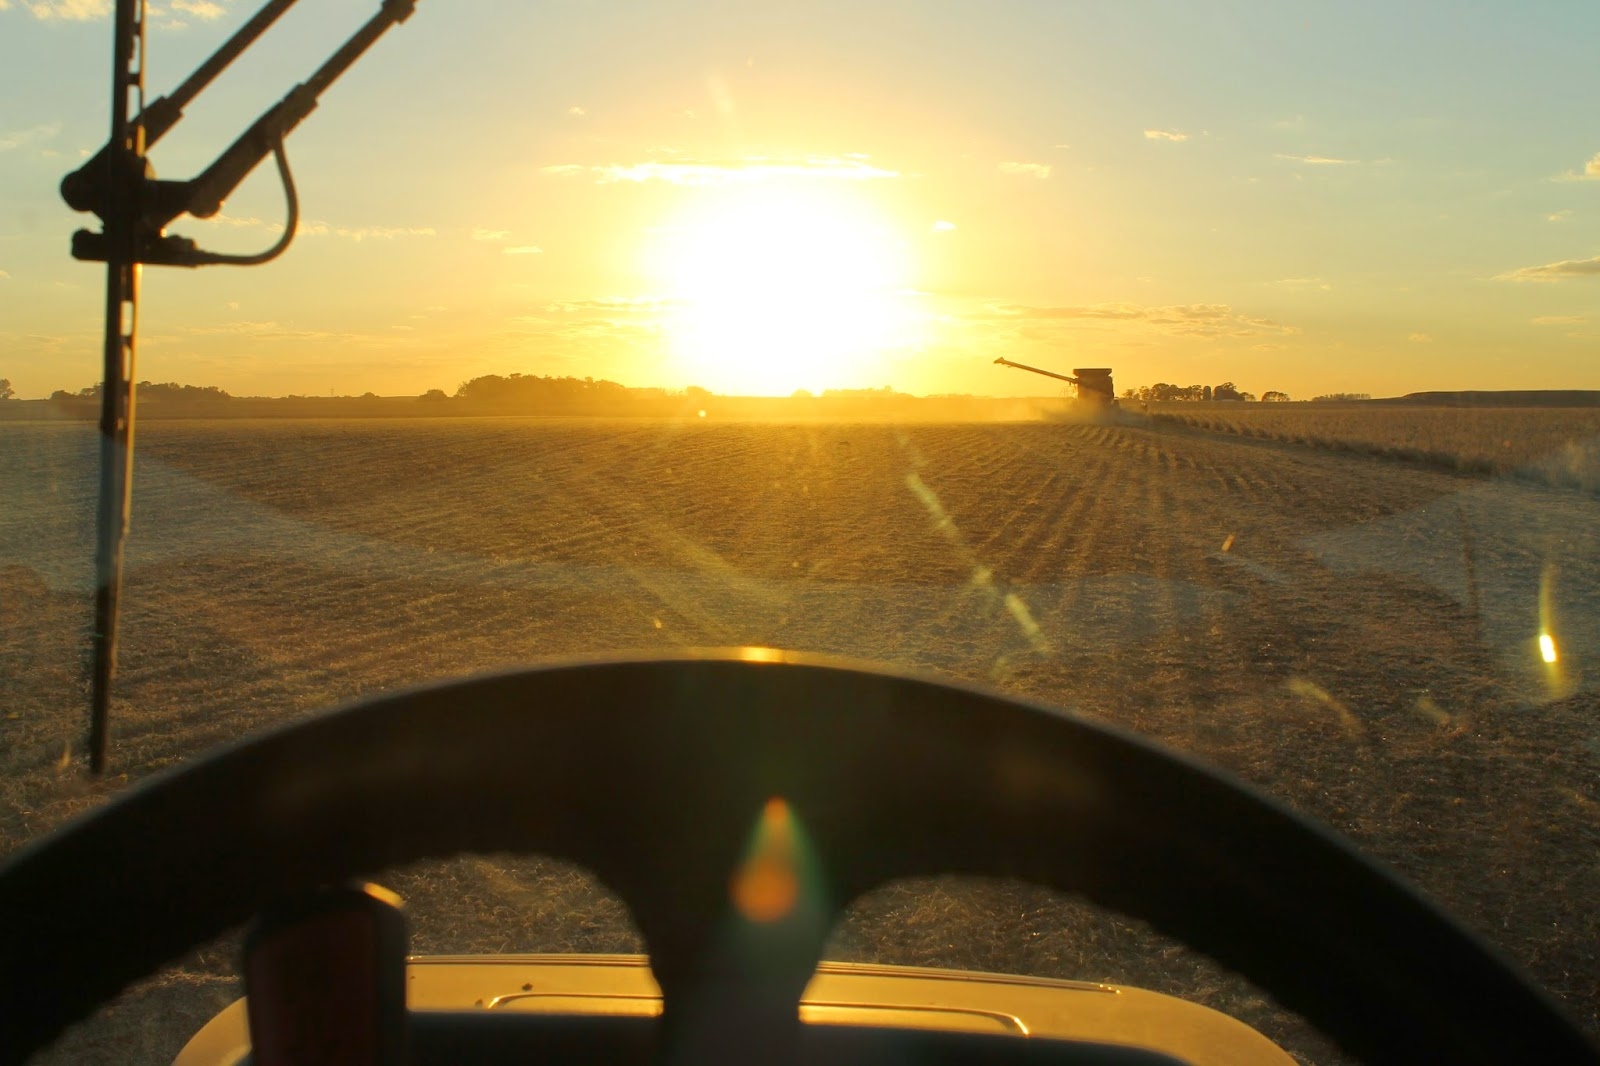 Views from my Tractor Seat - Combining Soybeans at Sunset